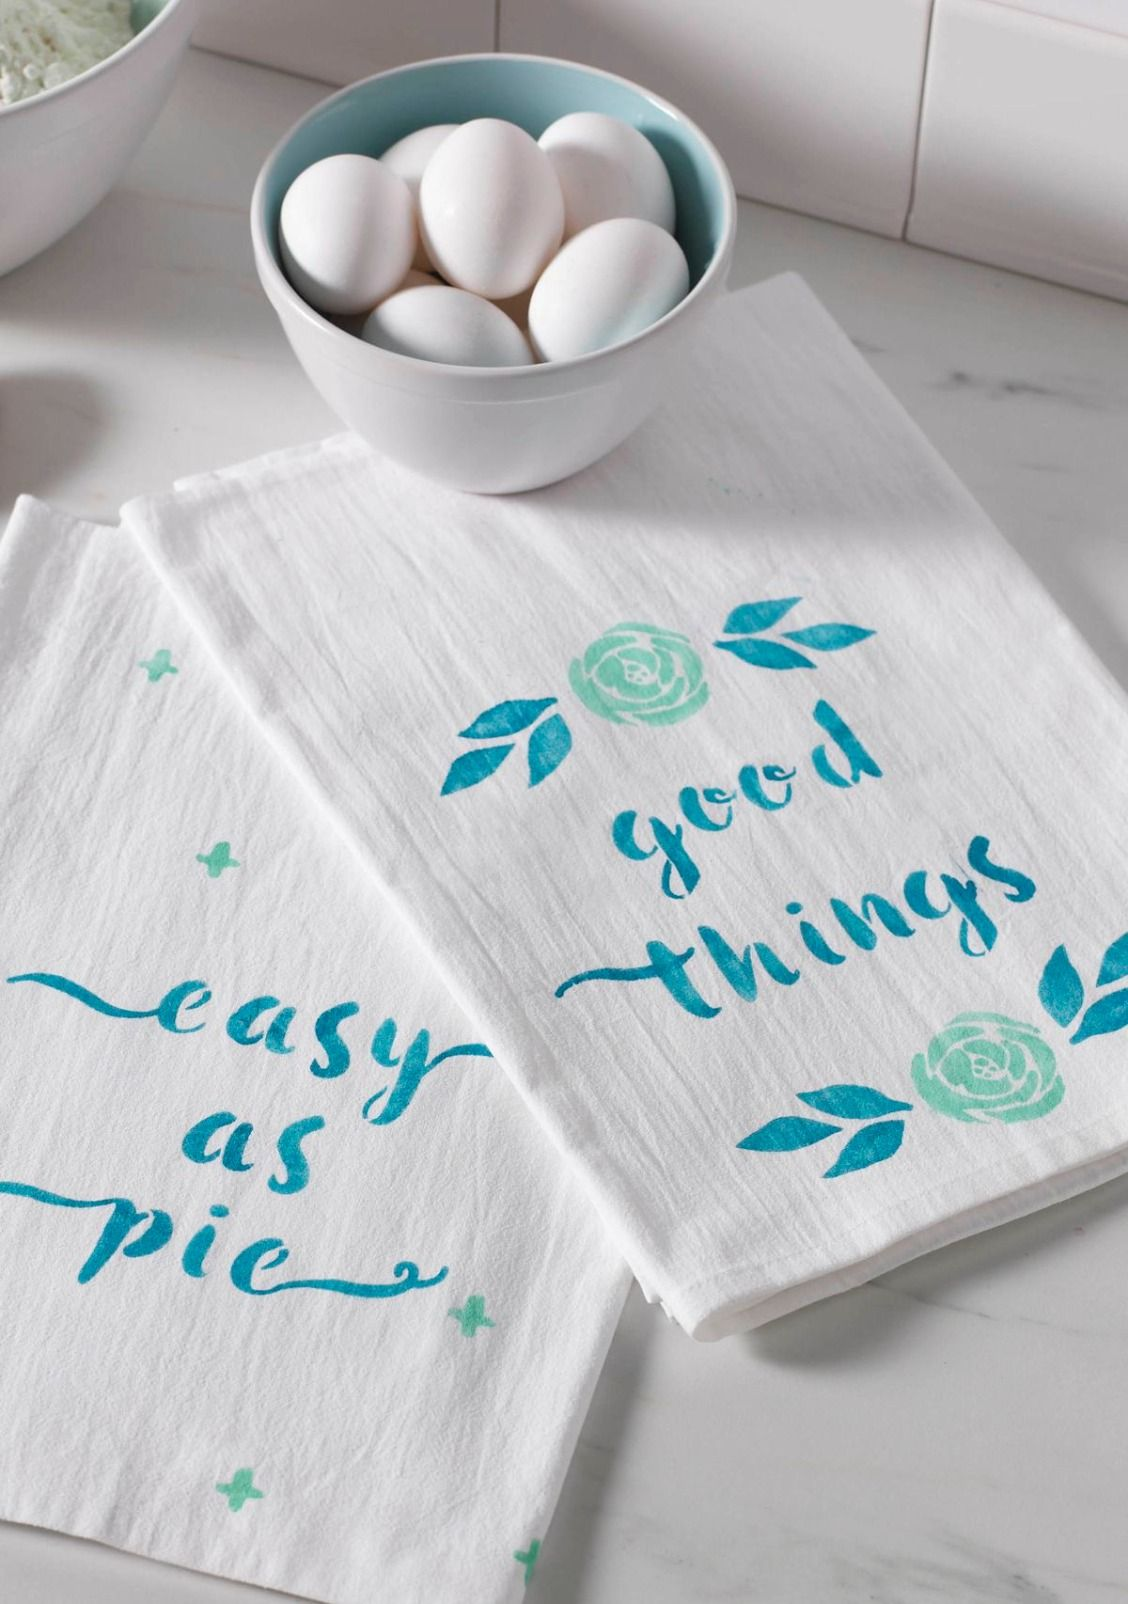 Stenciled Tea Towels with Phrases | Catchy phrases, Stenciling and ...